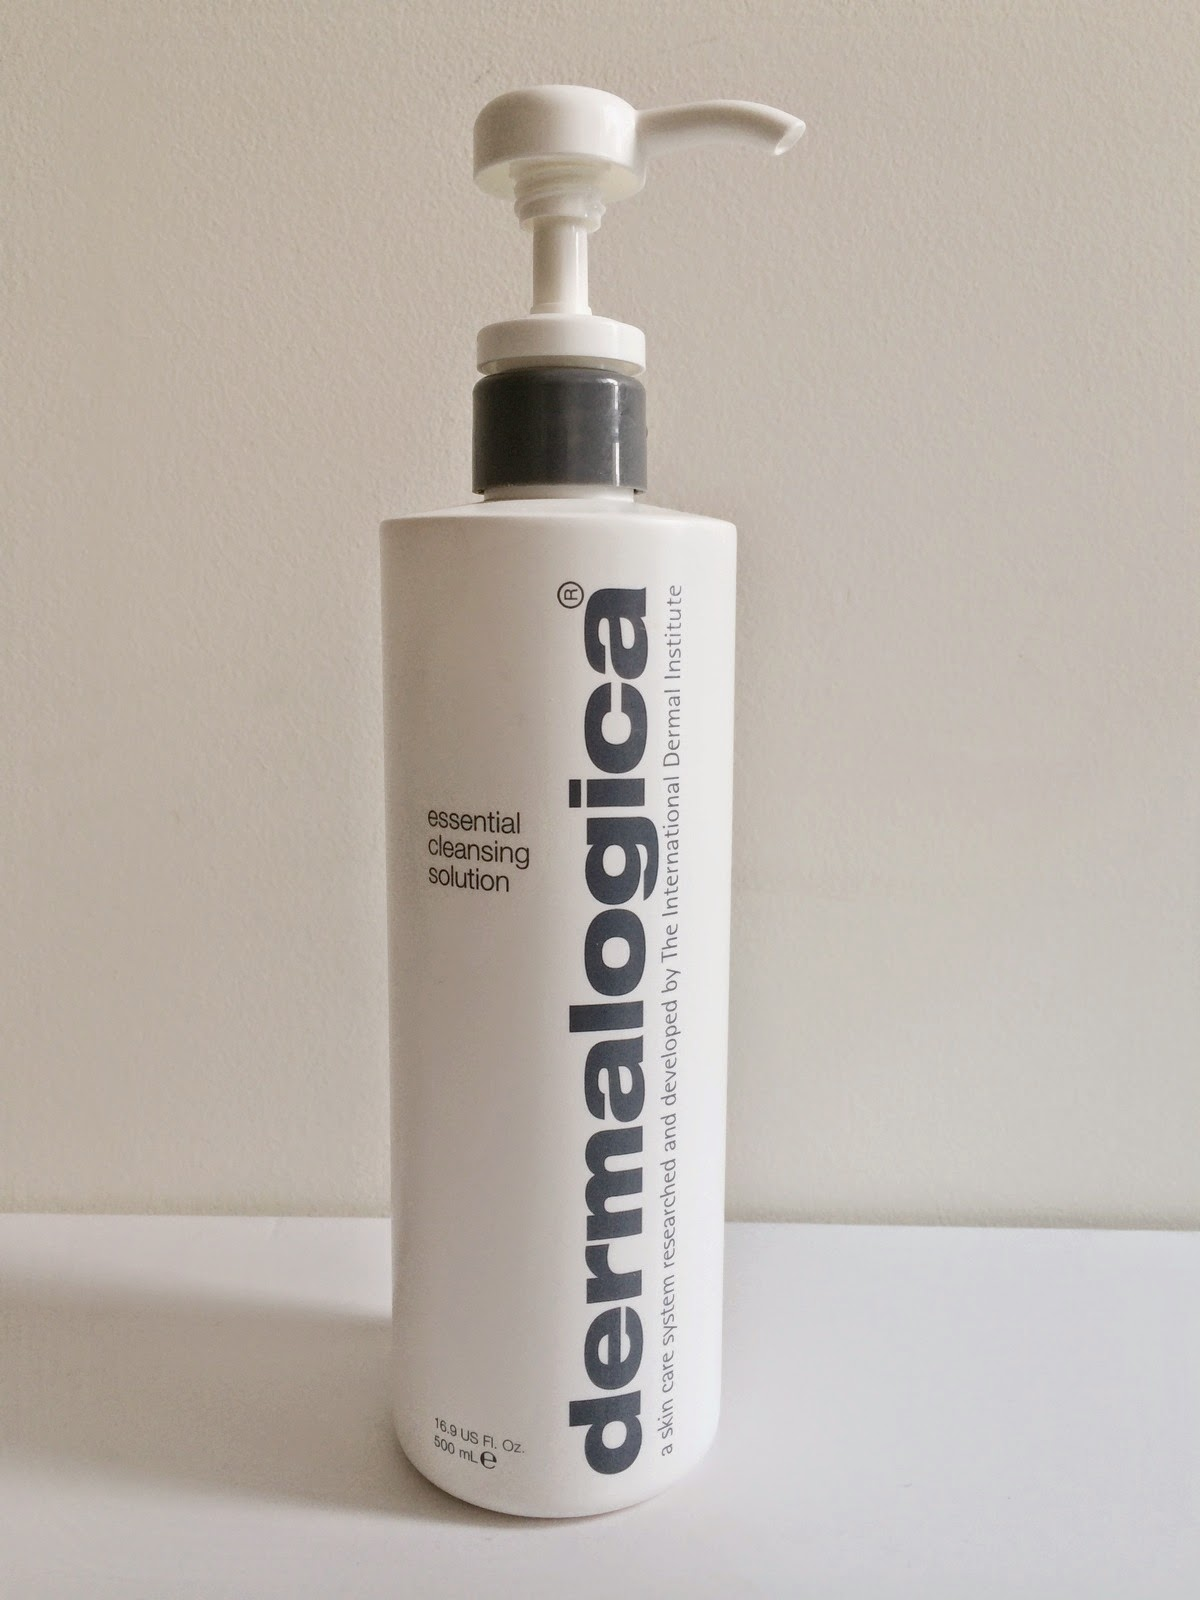 dermalogica essential cleansing solution review